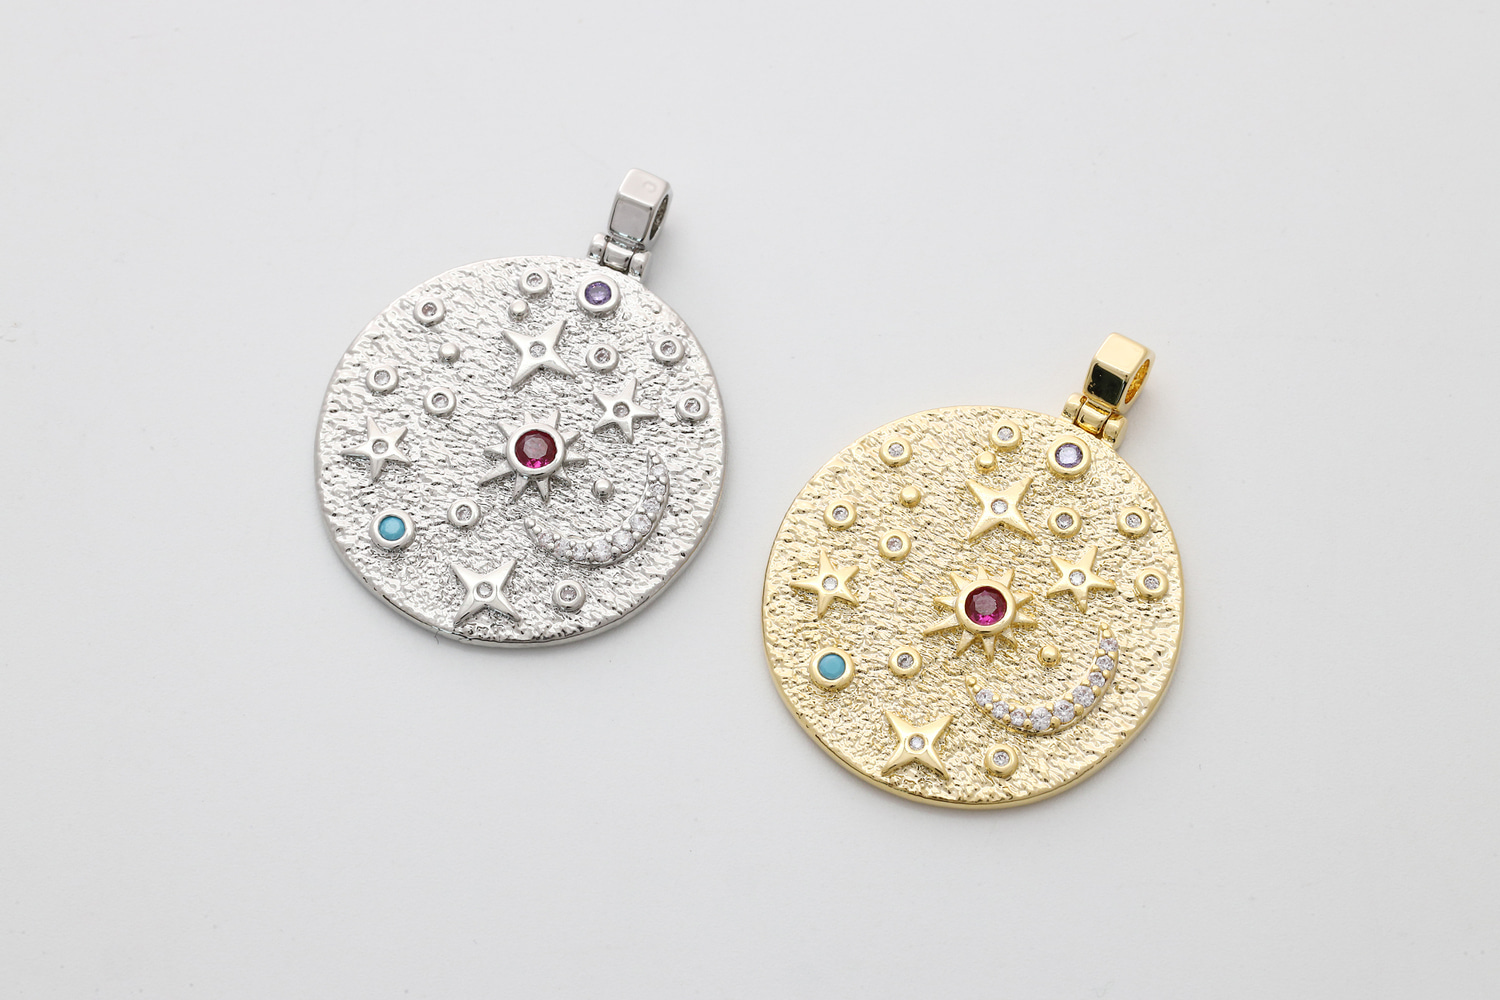 [Q16-VC6] Starry night round pendant, Brass, CZ, Nickel free, Bold pendant, Unique charm, Jewelry making supplies, 1 piece (Q16-R2, Q16-R2R)